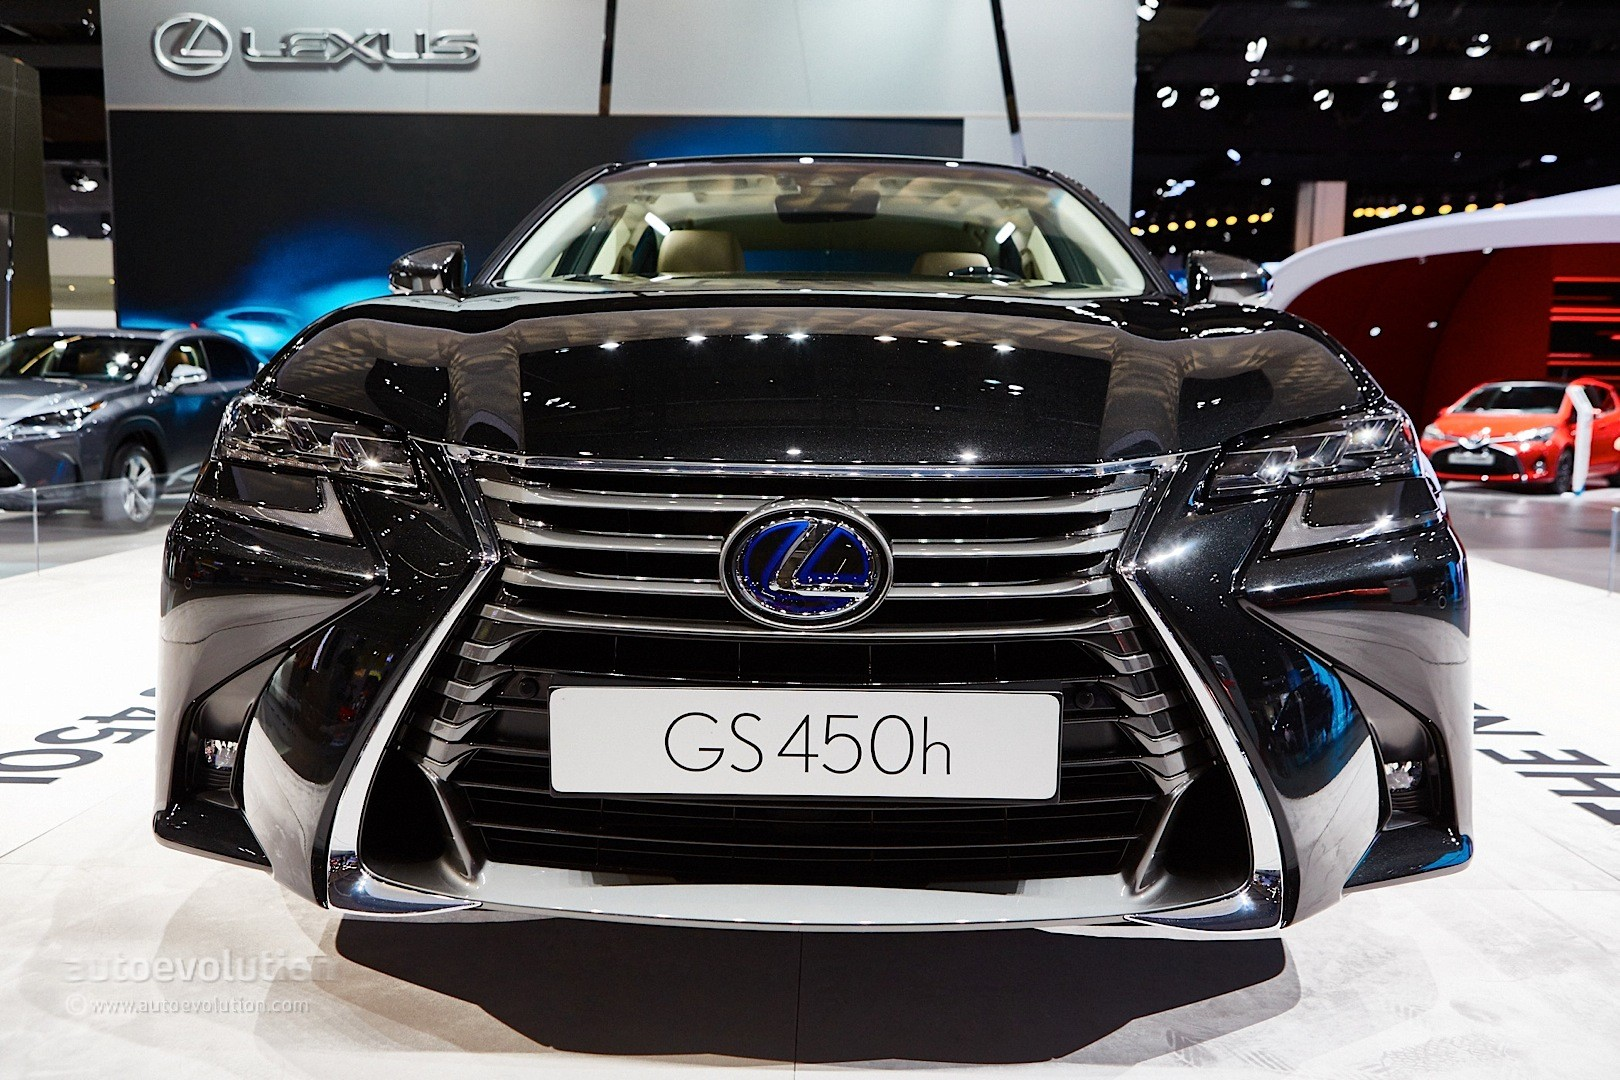 2016 lexus gs 450h facelift debuts with spindle grille 2 0 in frankfurt autoevolution. Black Bedroom Furniture Sets. Home Design Ideas